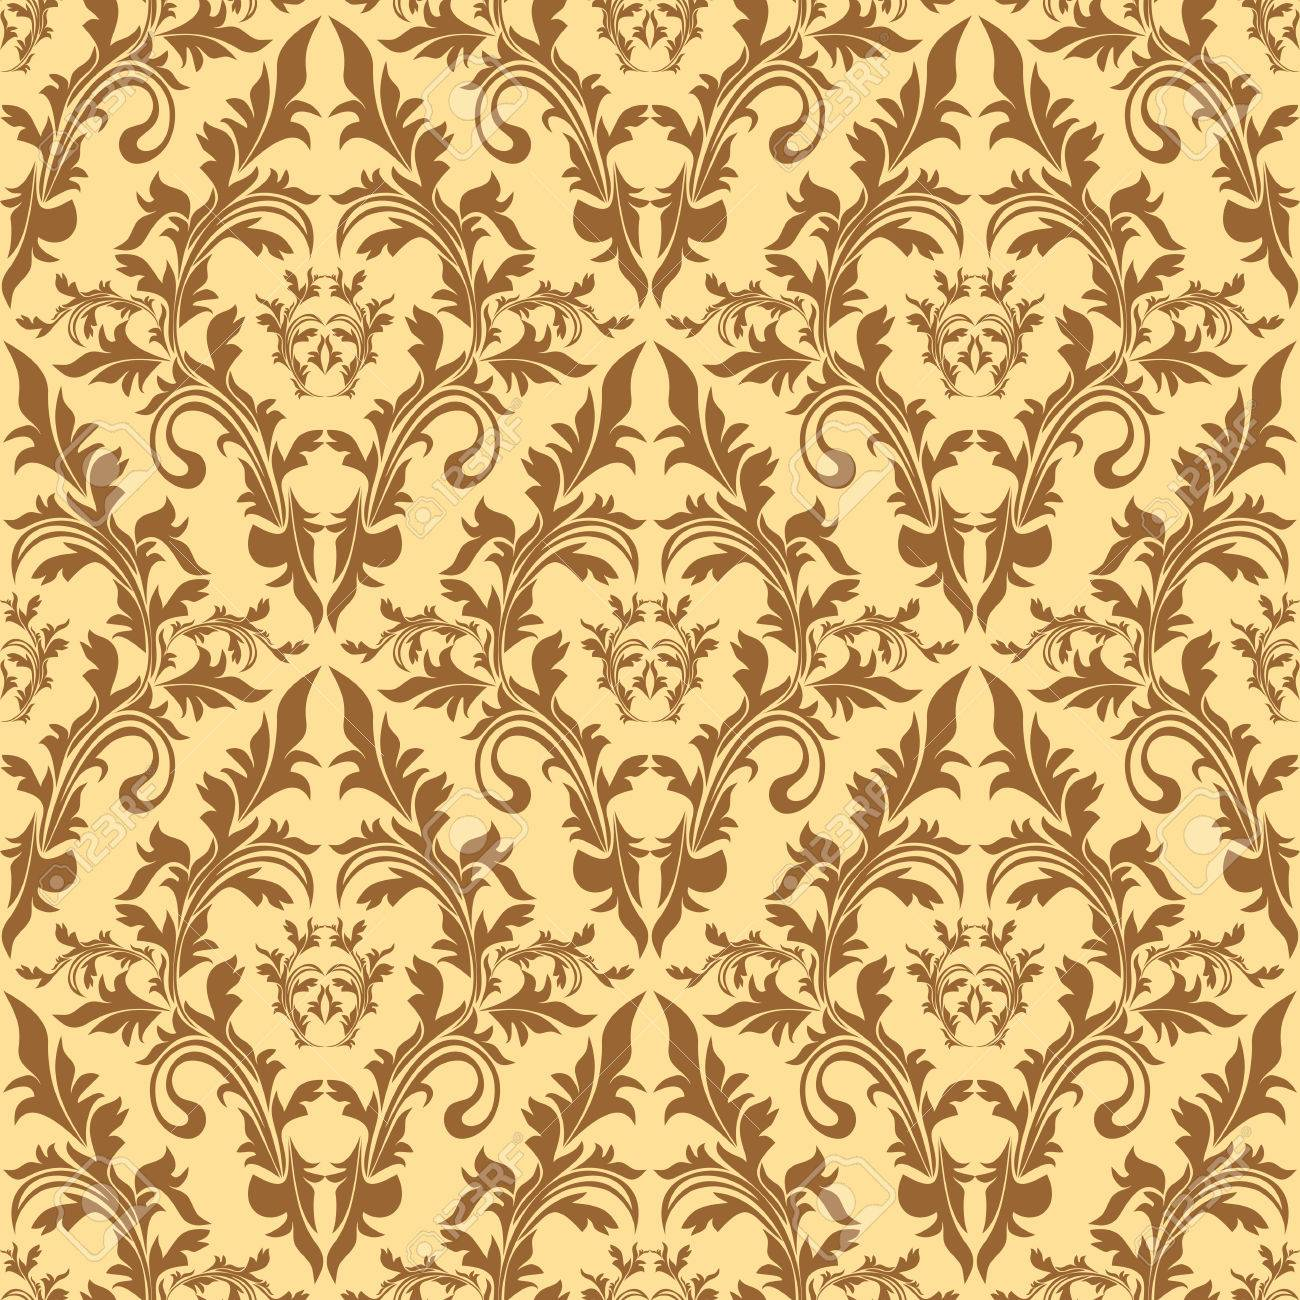 Seamless damask floral pattern in beige colors - 22956262